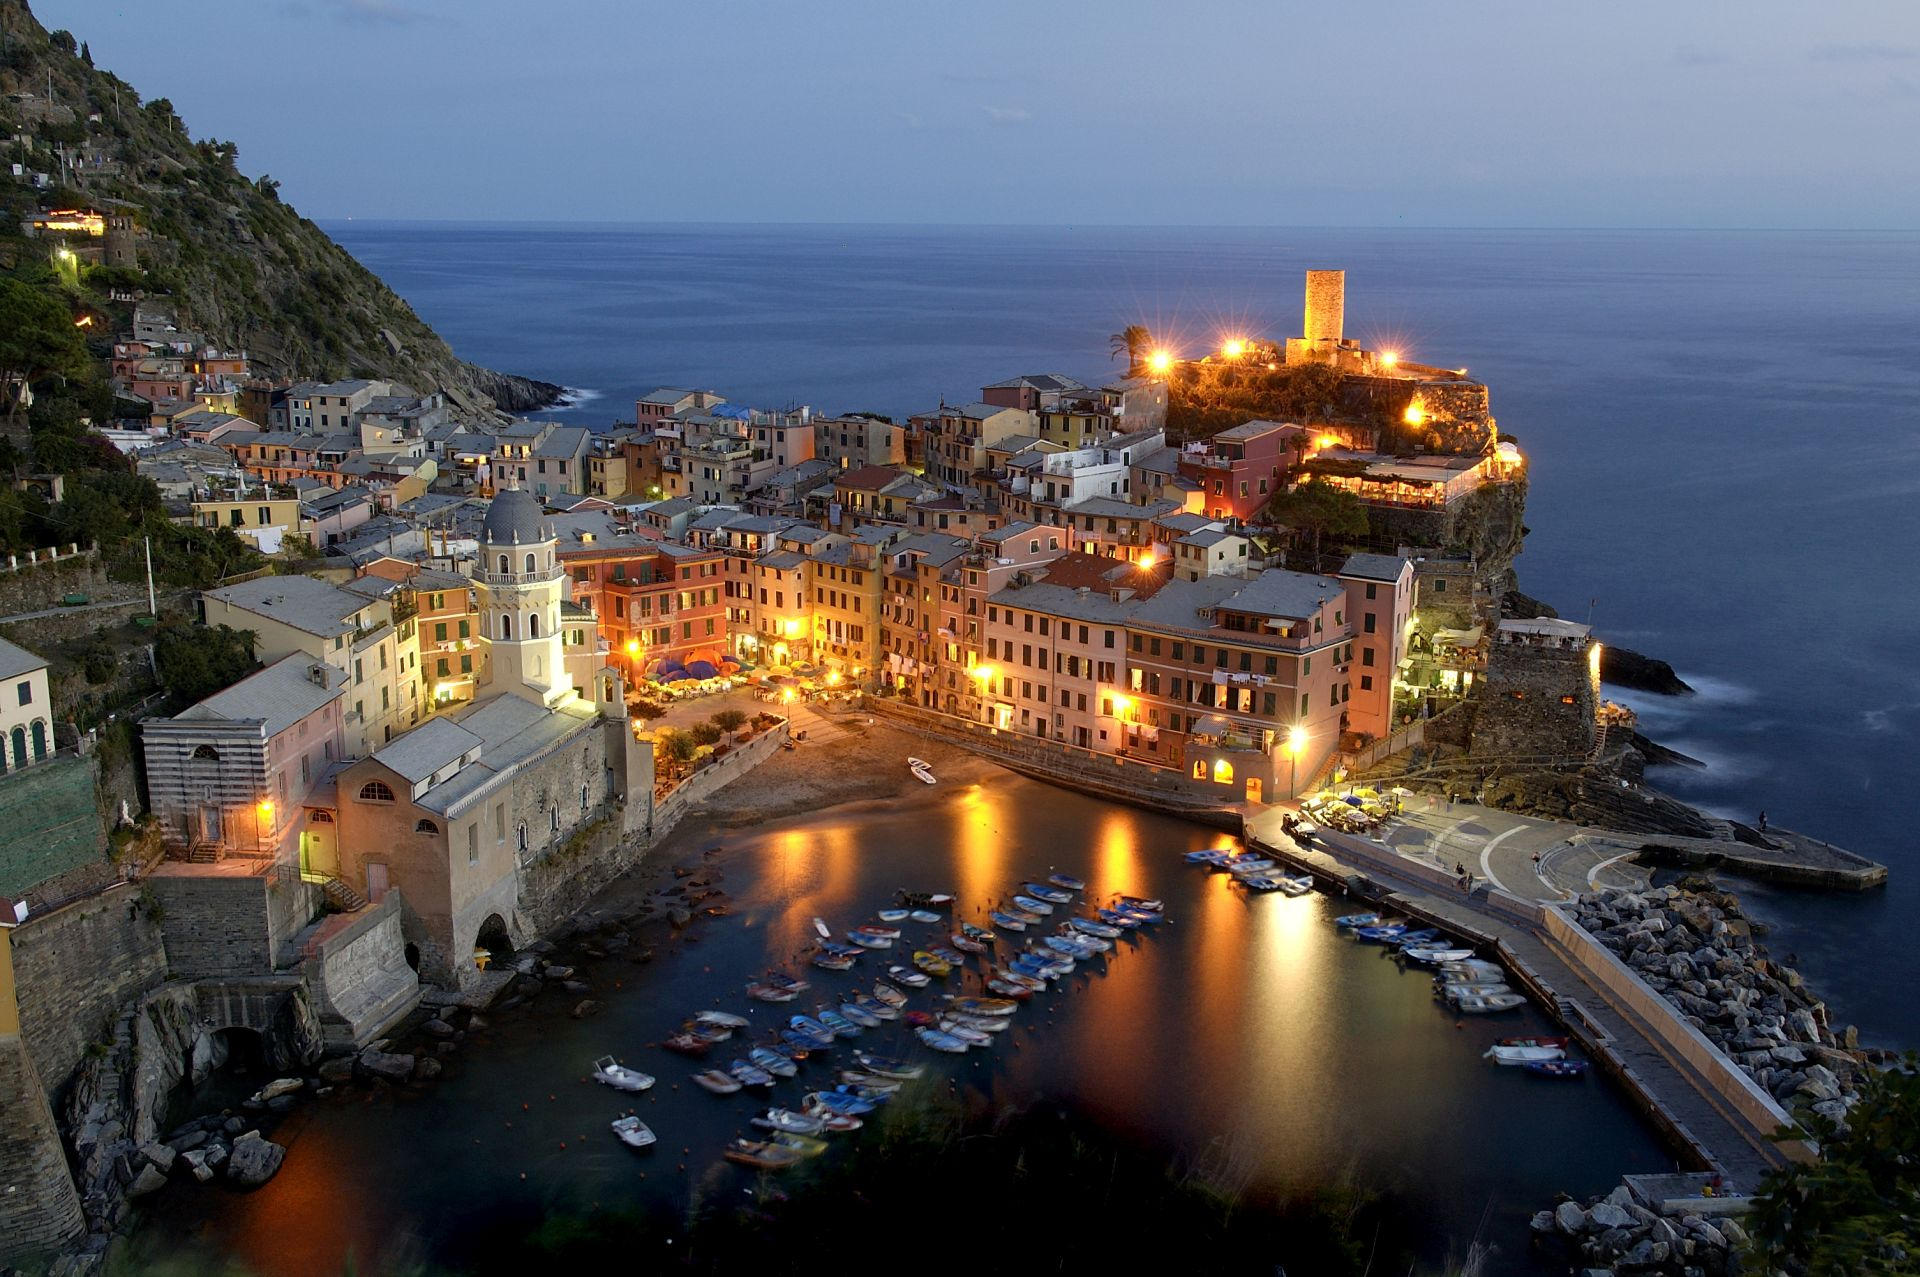 Randonnee Tours offers cycling and hiking tours in Italy, Cinque Terre